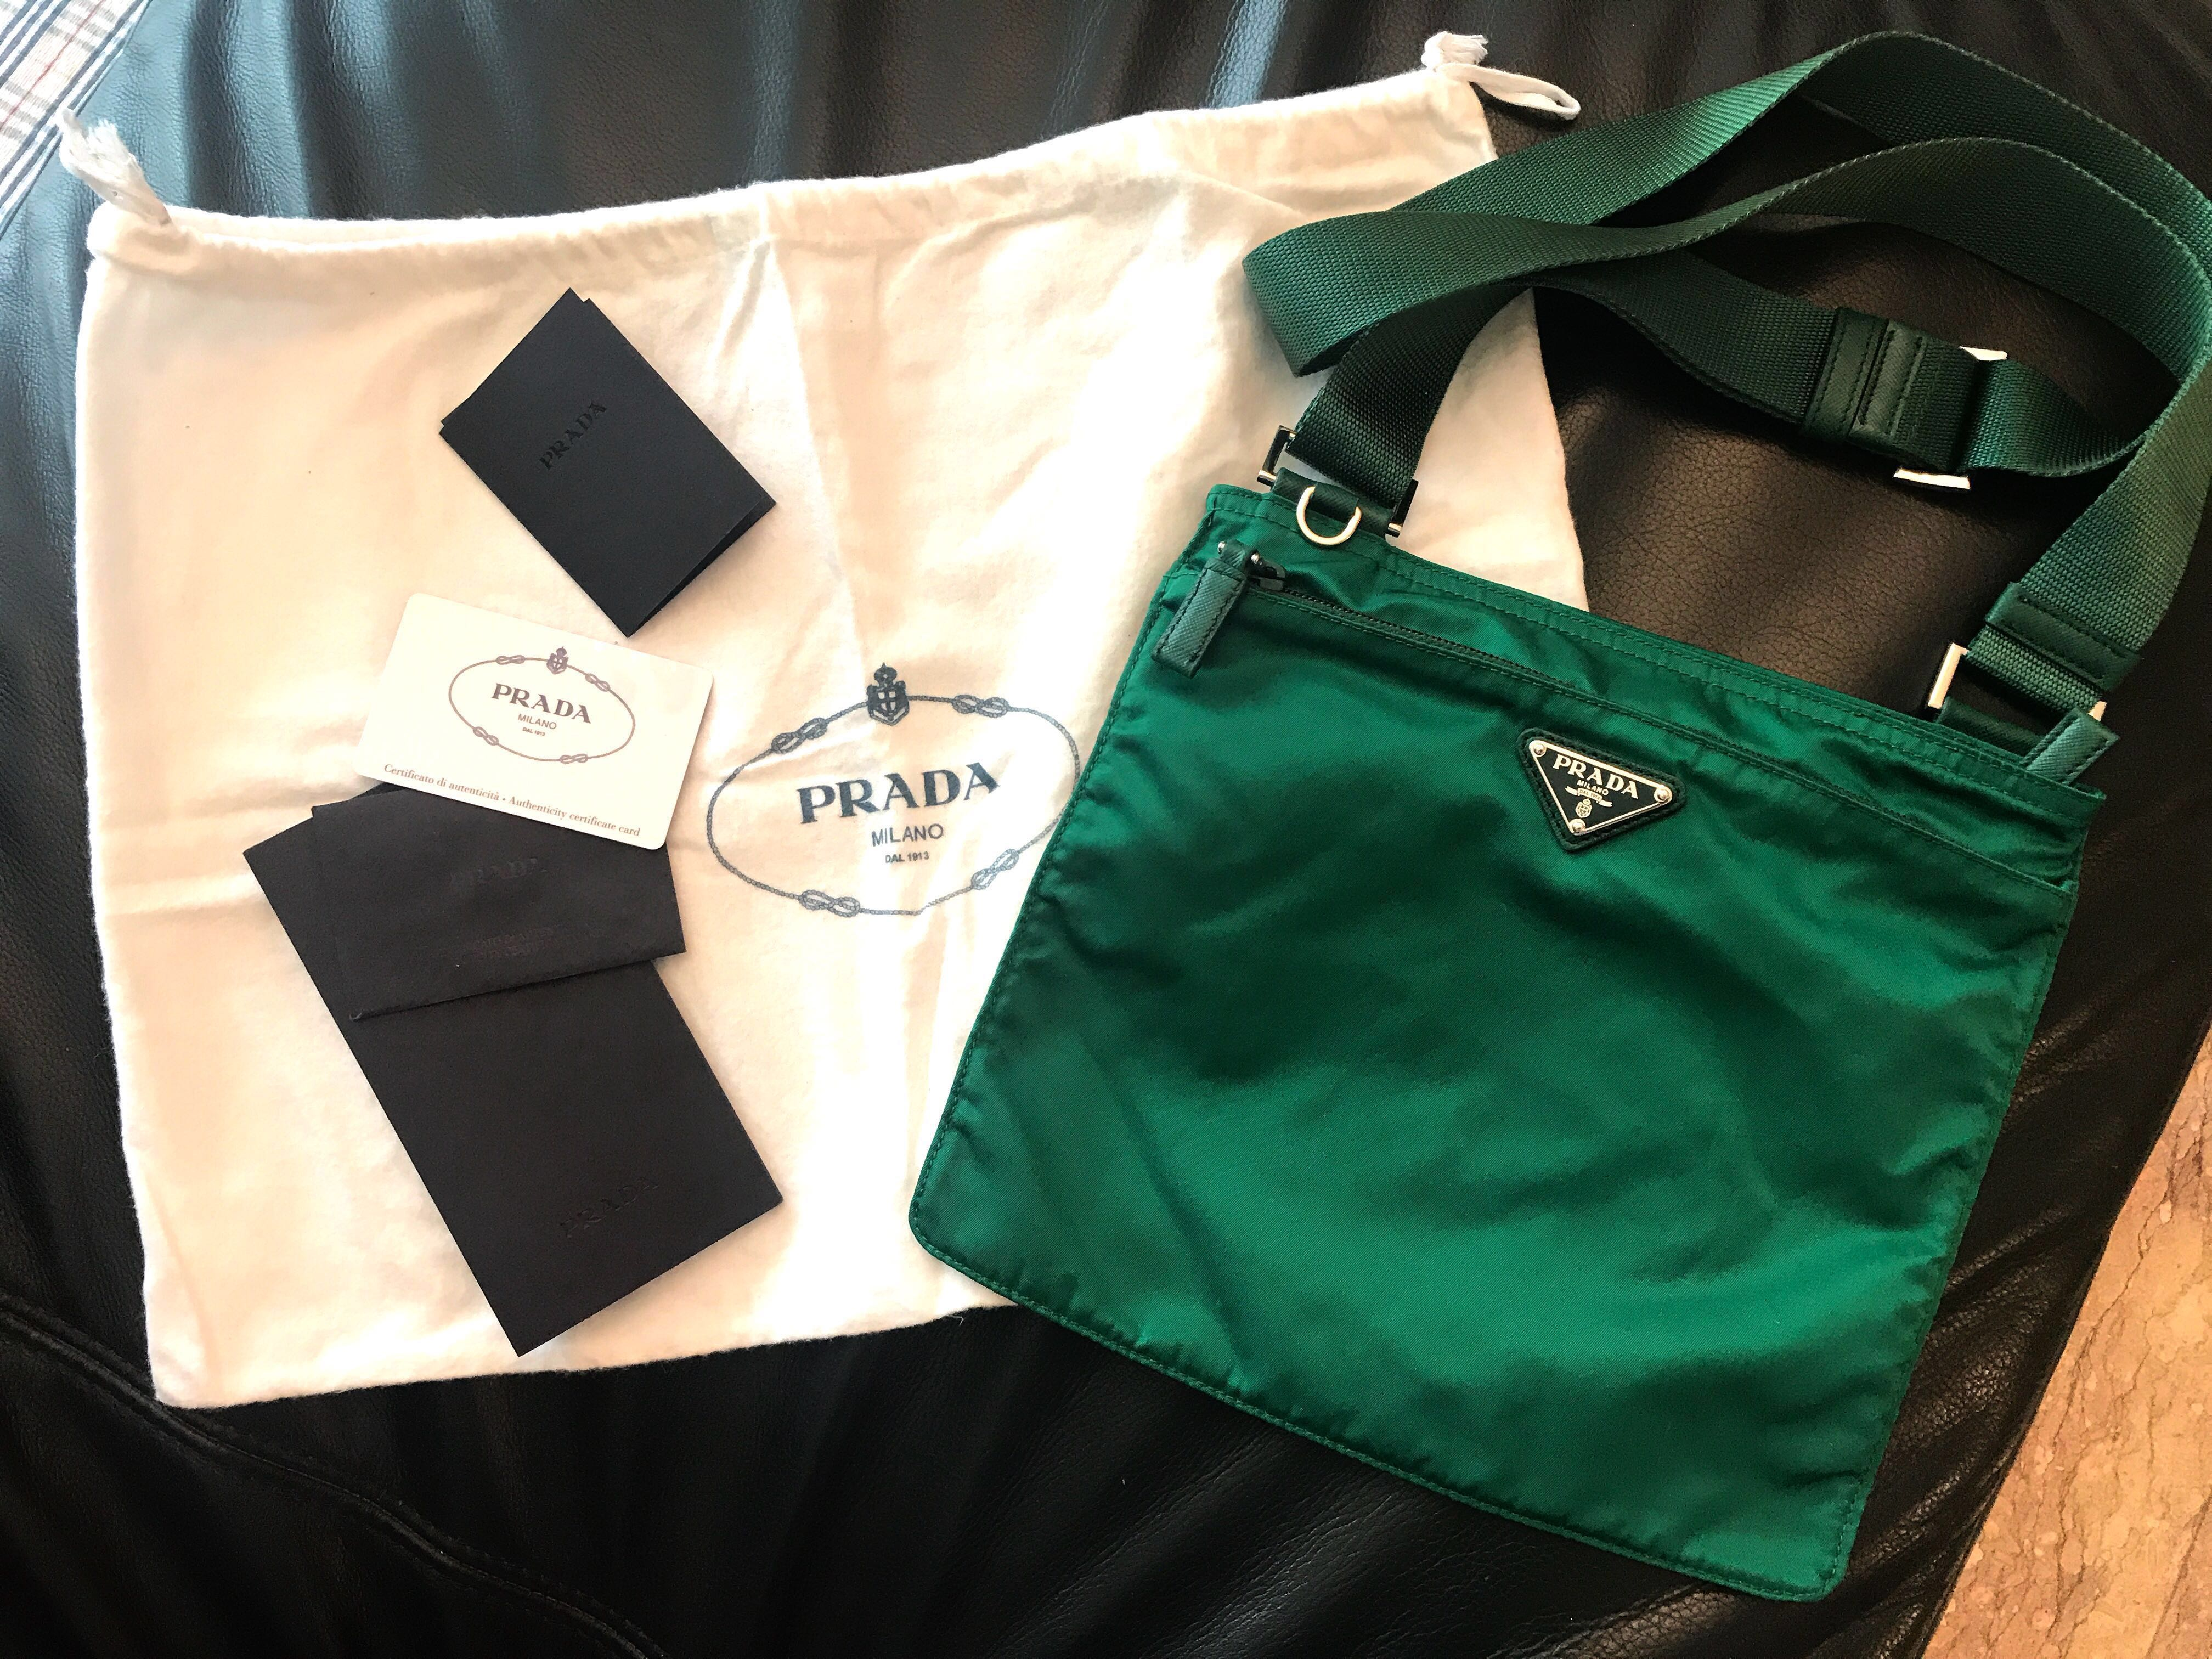 56abd51bd12e Authentic Prada Unique Green Nylon Sling Bag, Women's Fashion, Bags &  Wallets, Sling Bags on Carousell